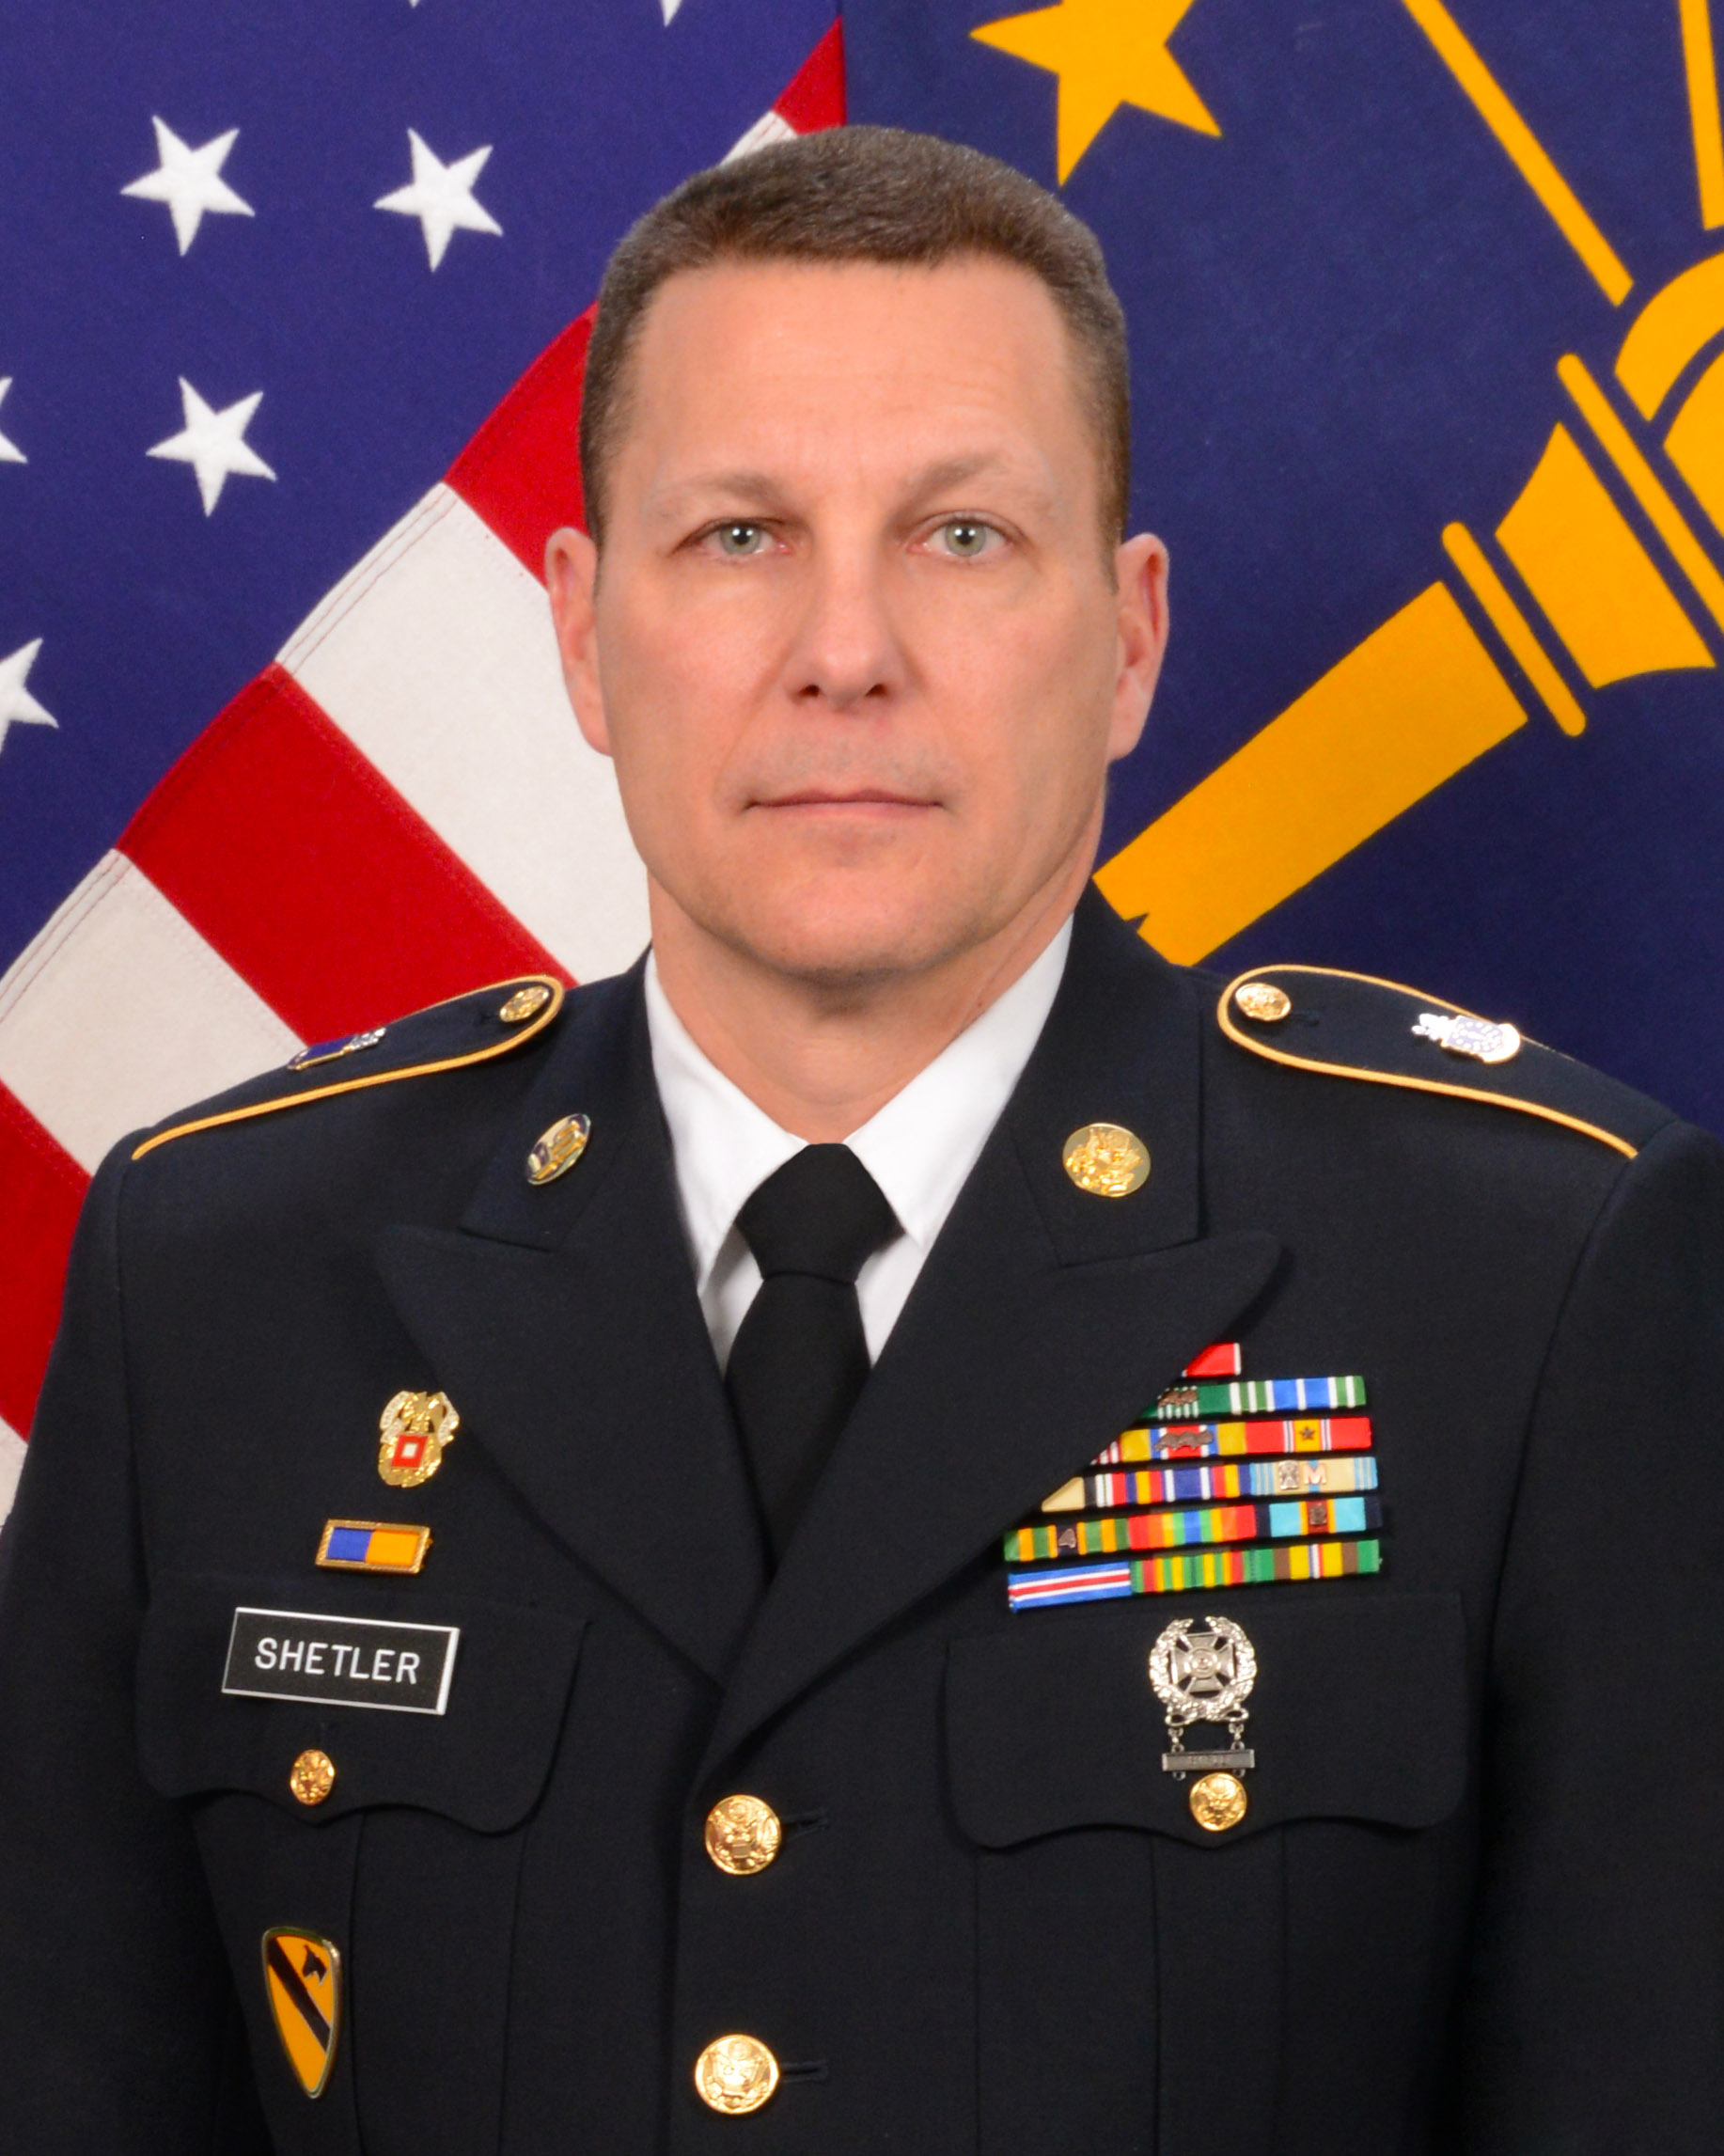 Senior Enlisted Advisor Command Sergeant Major Dale Shetler